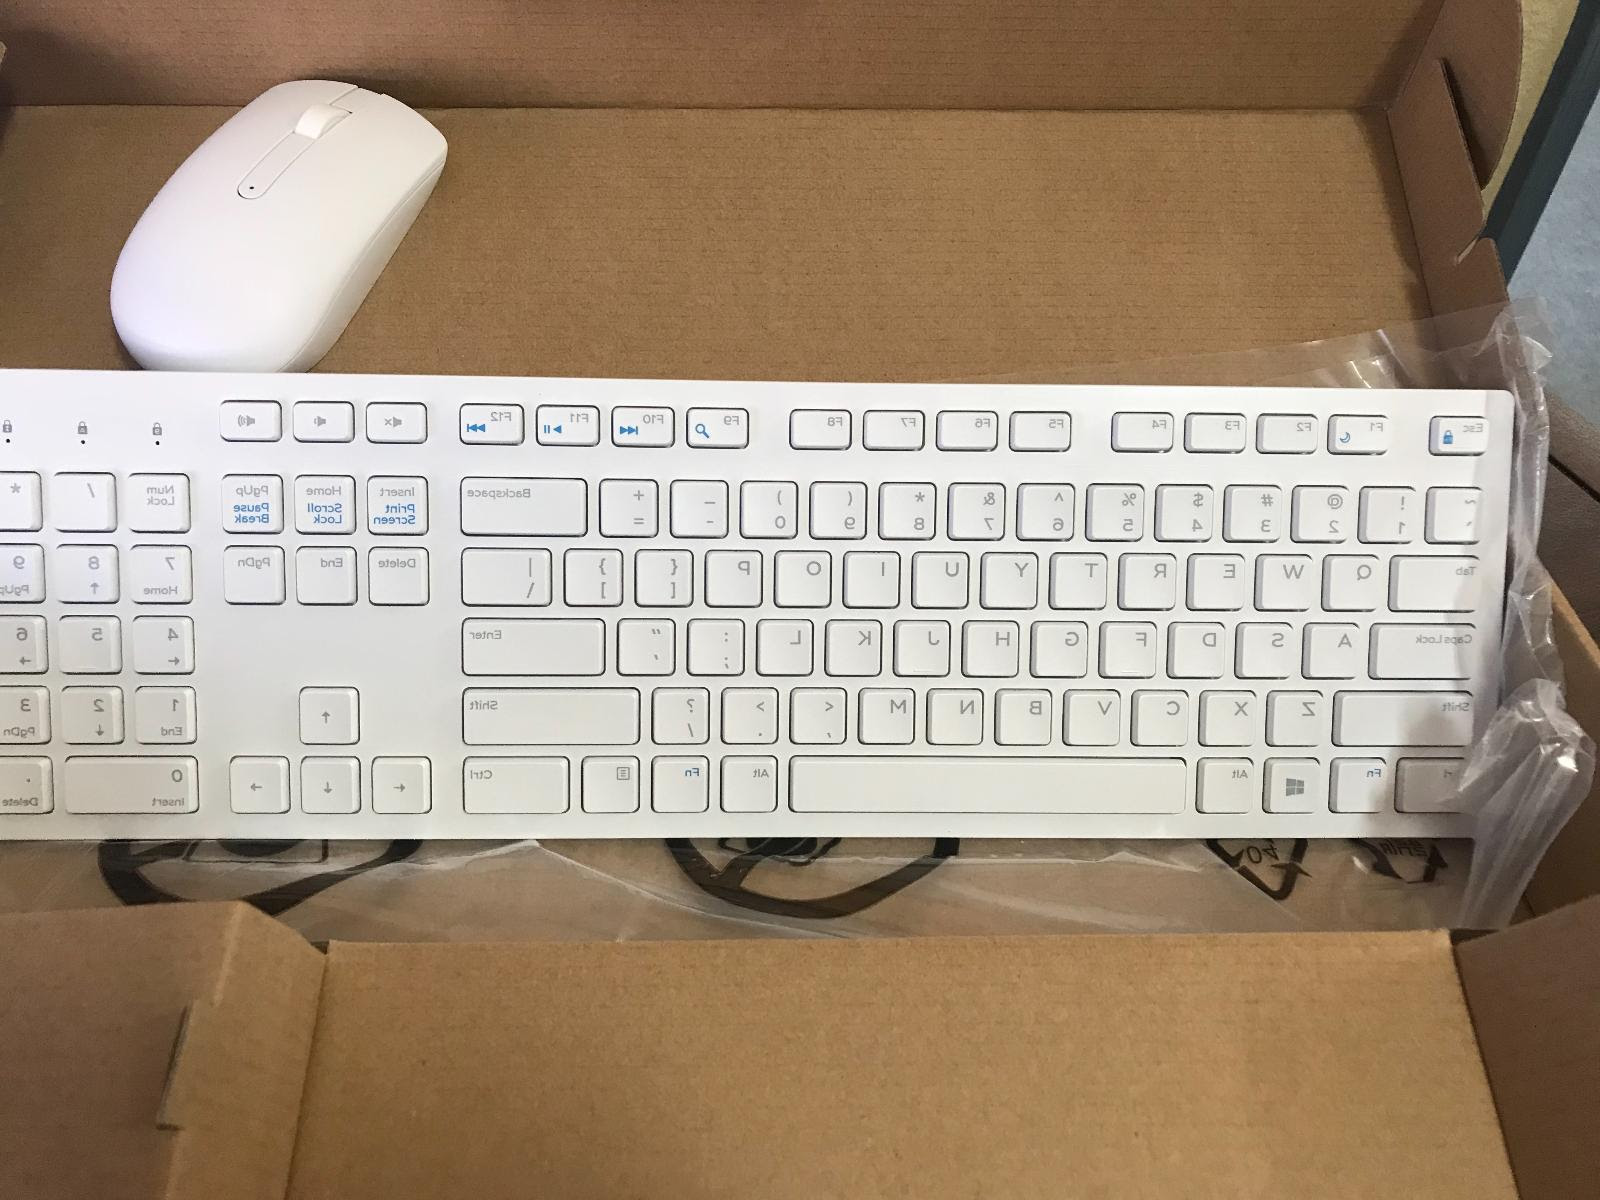 5t11r Dell Wireless Keyboard Mouse Receiver White